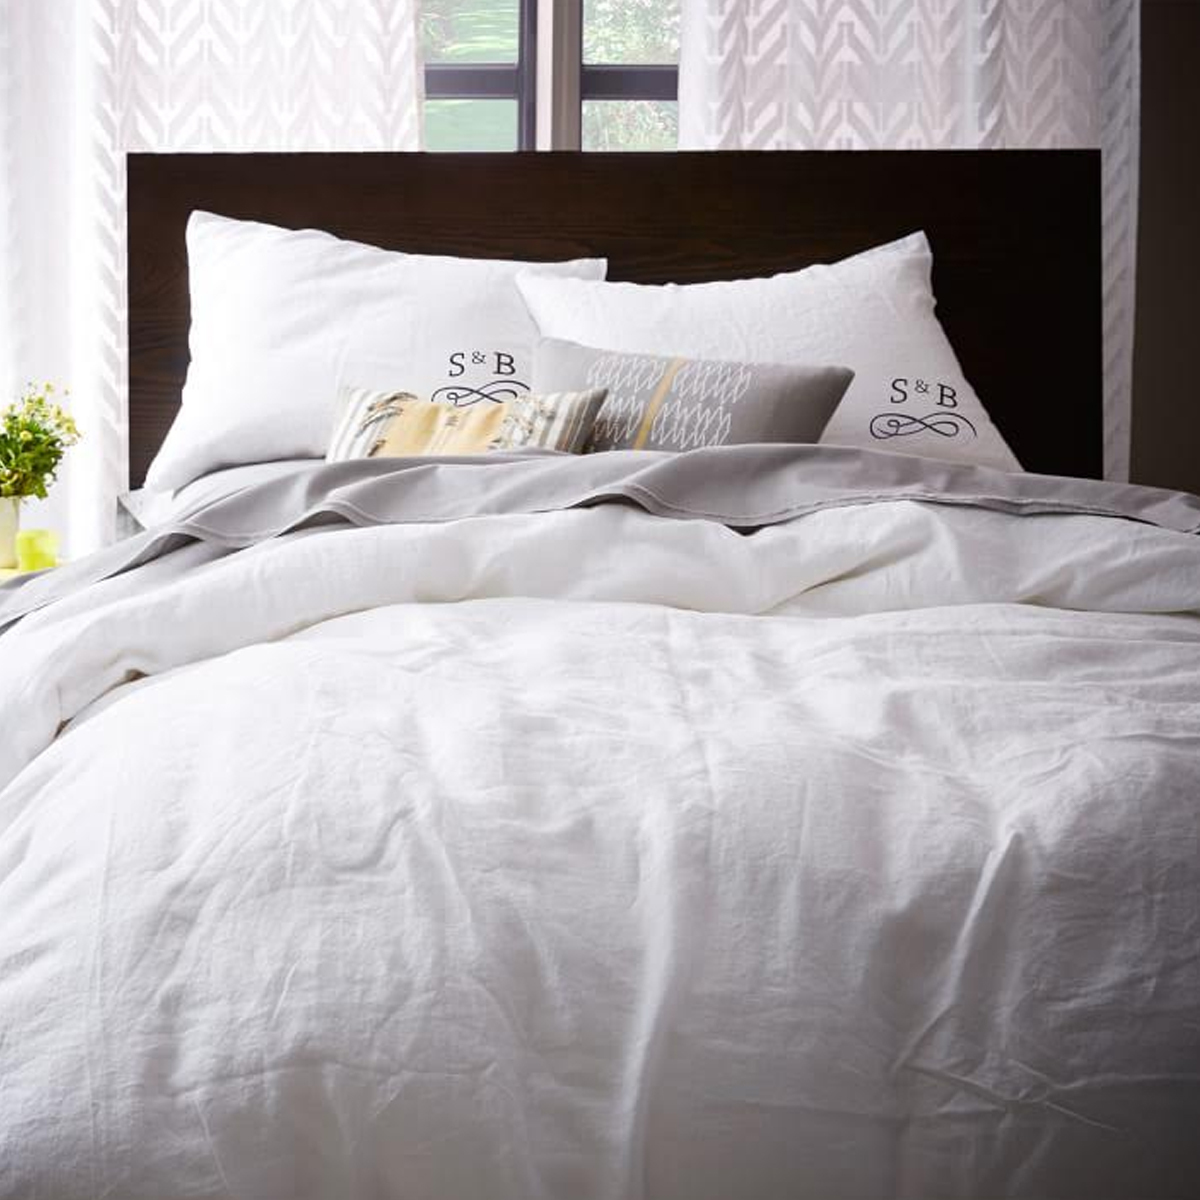 Belgian Flax Linen Duvet Cover and Shams photo